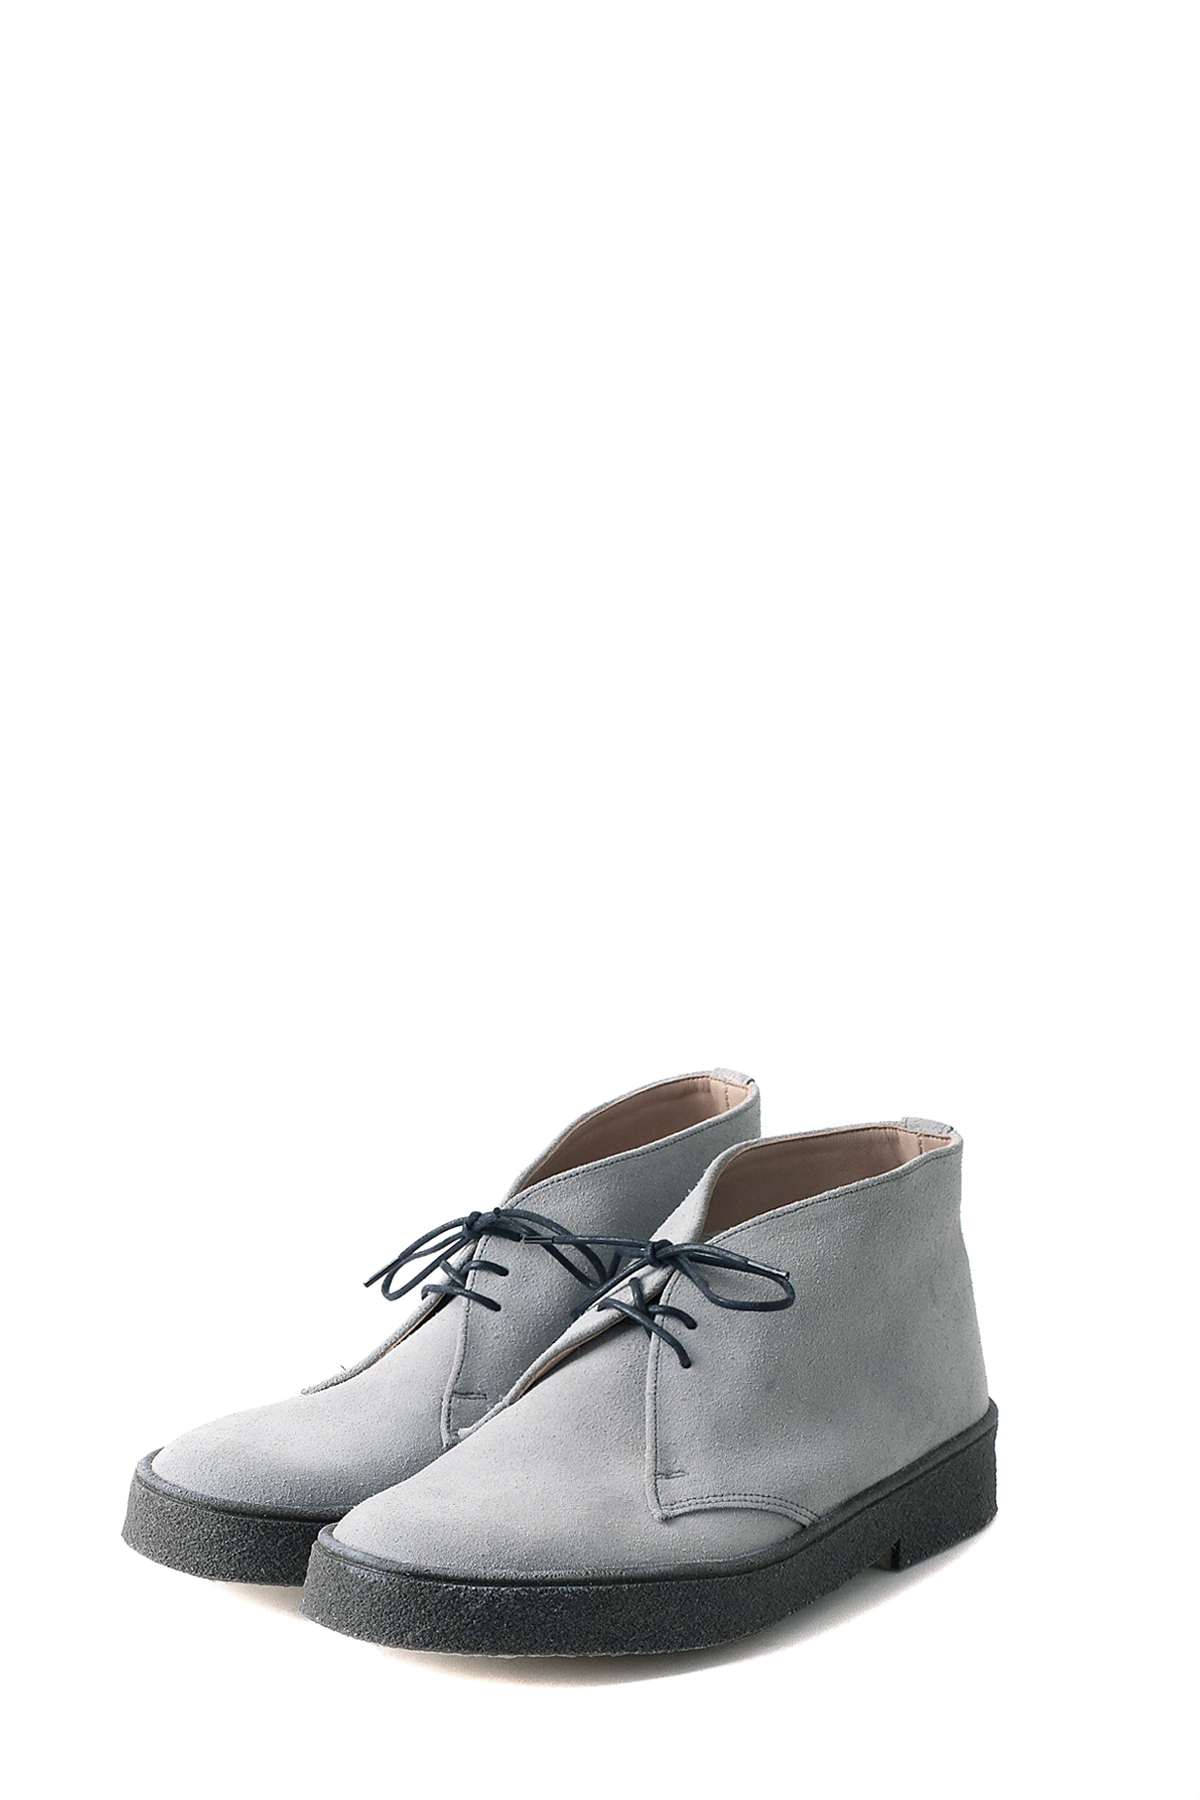 GEORGE COX : Chukka (Light Grey Suede)